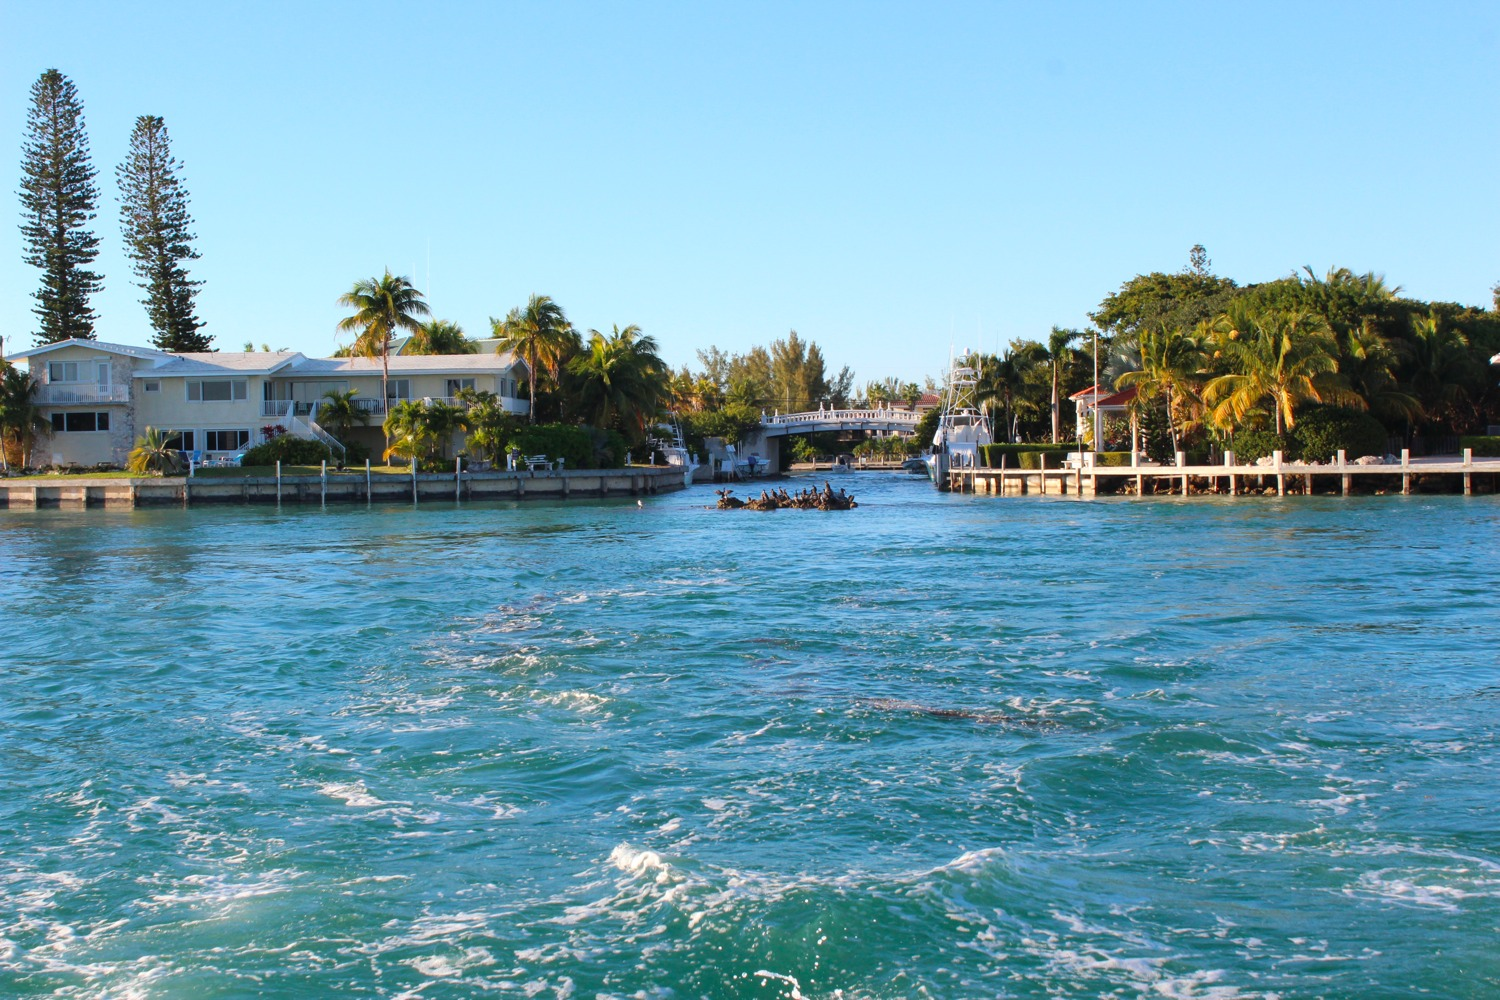 72 hours in the florida keys